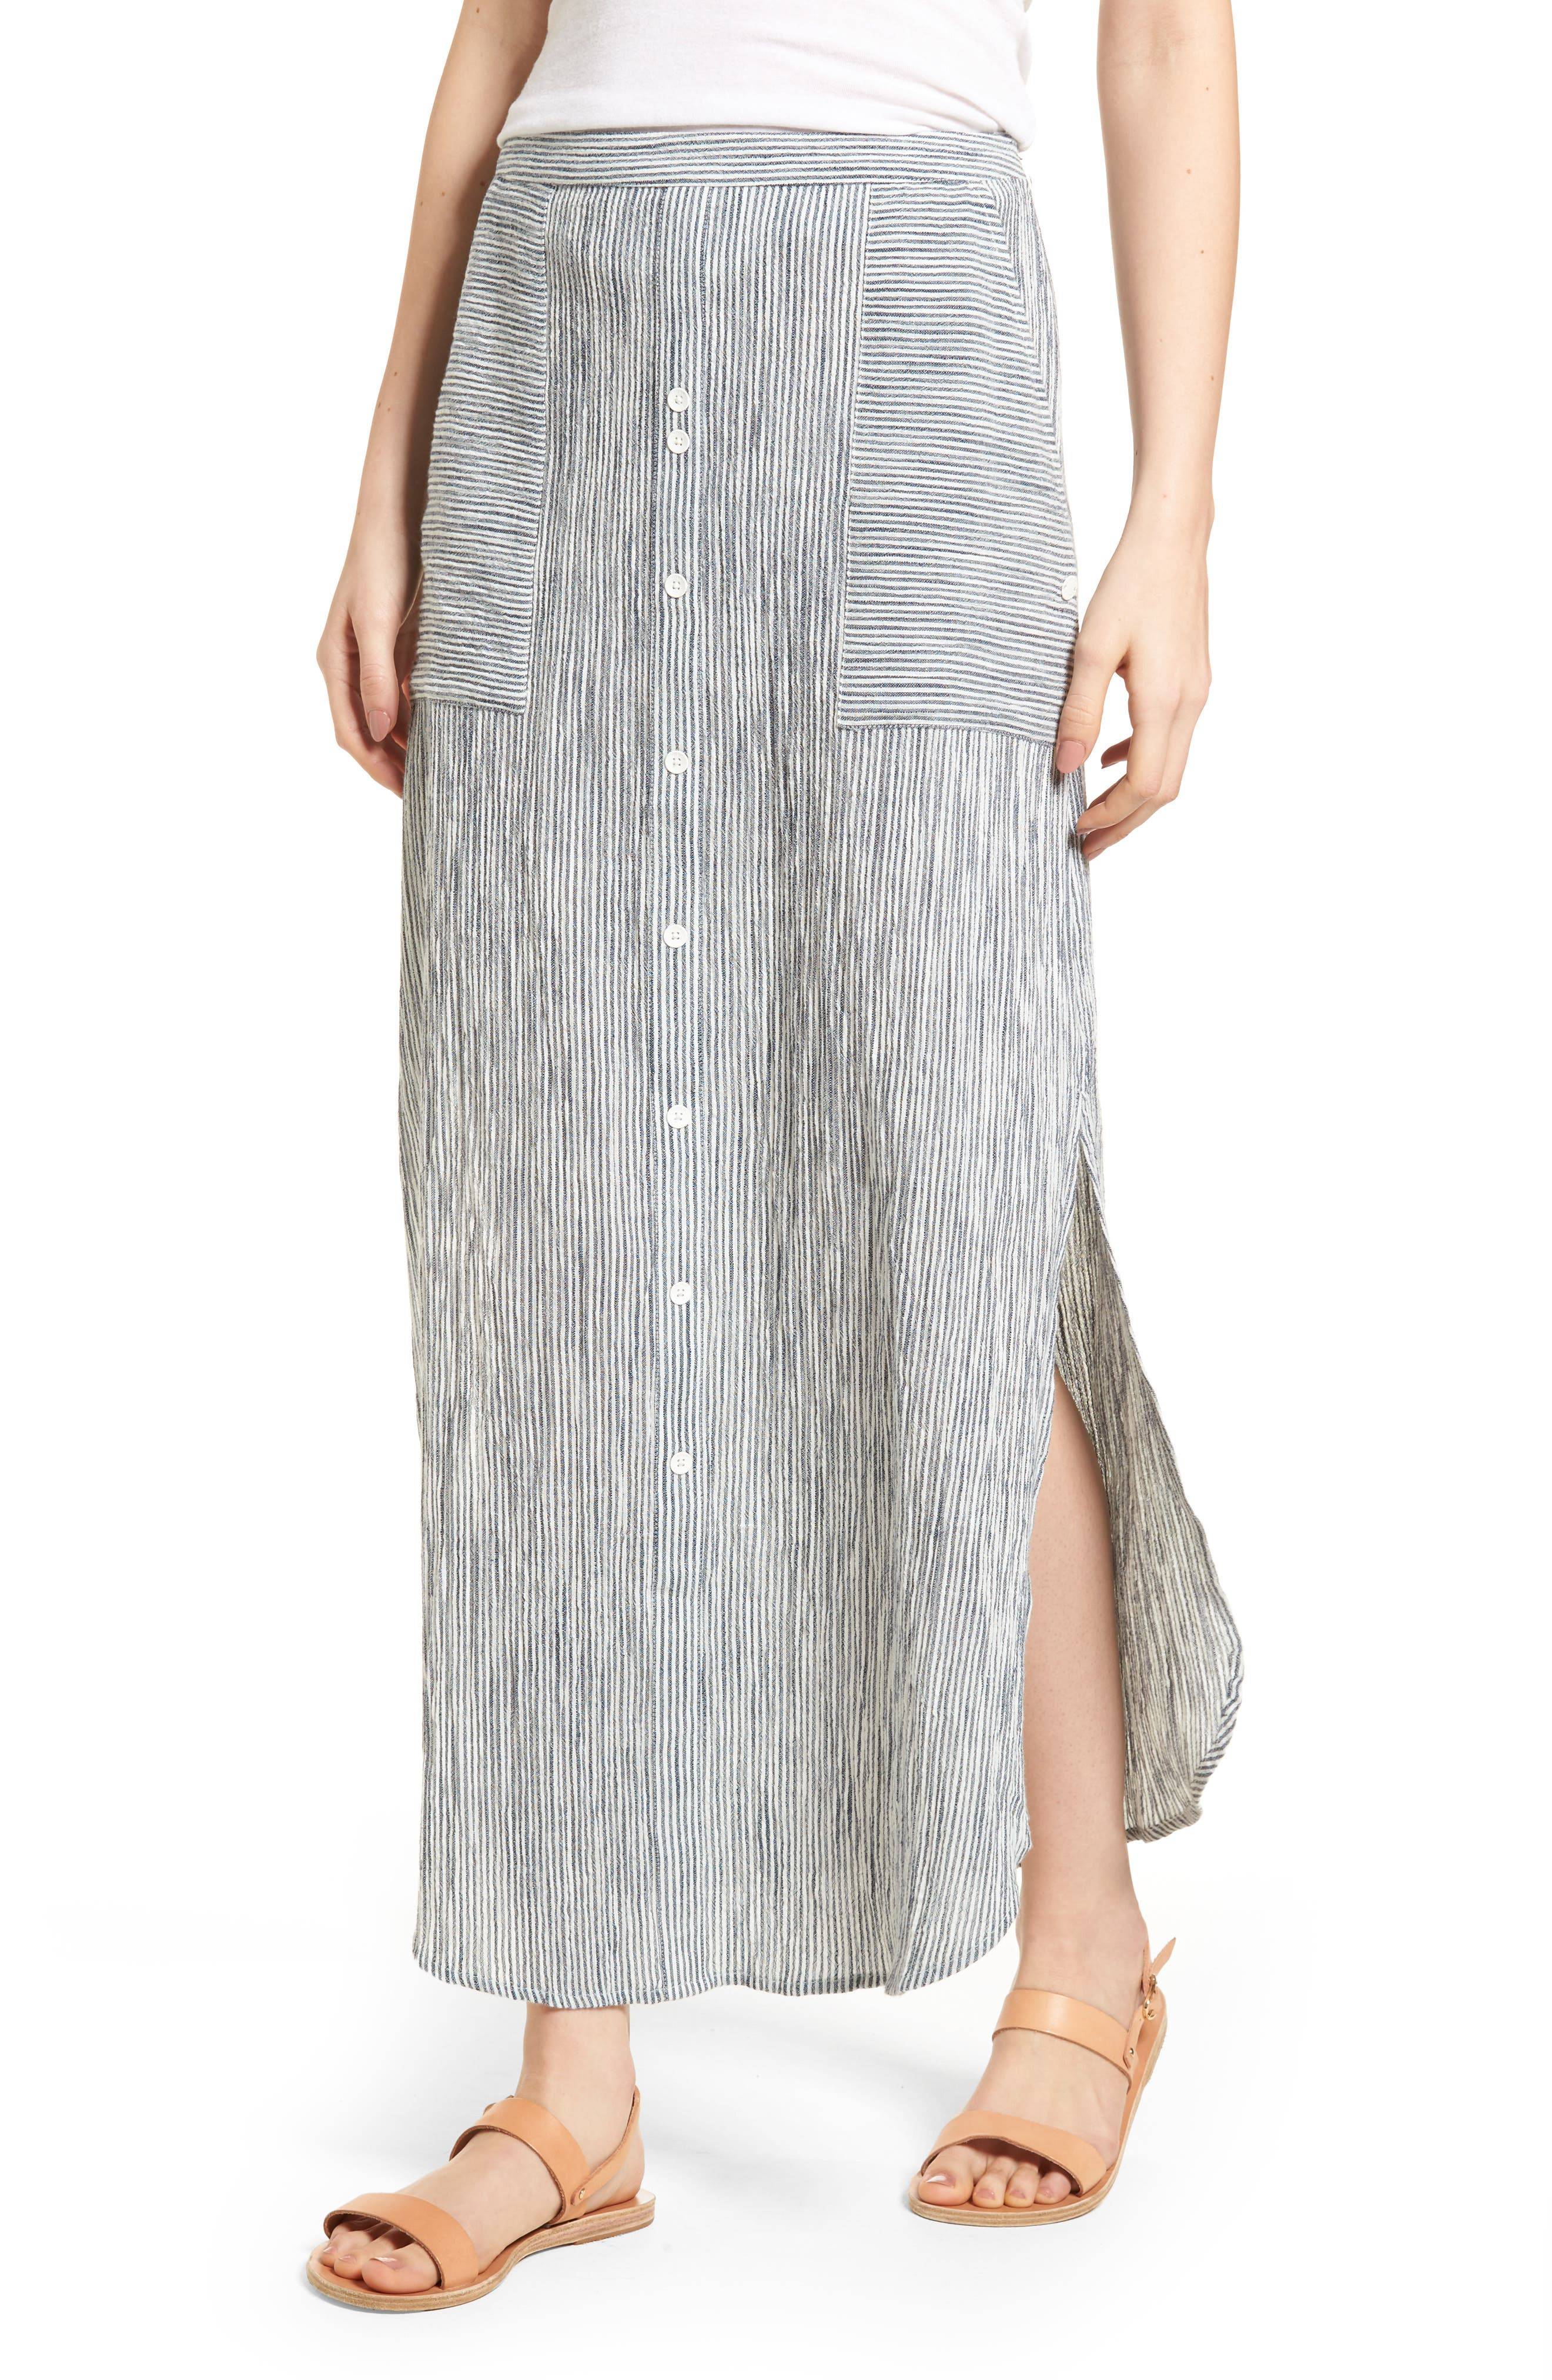 Roxy Sunset Islands Pinstripe Maxi Skirt